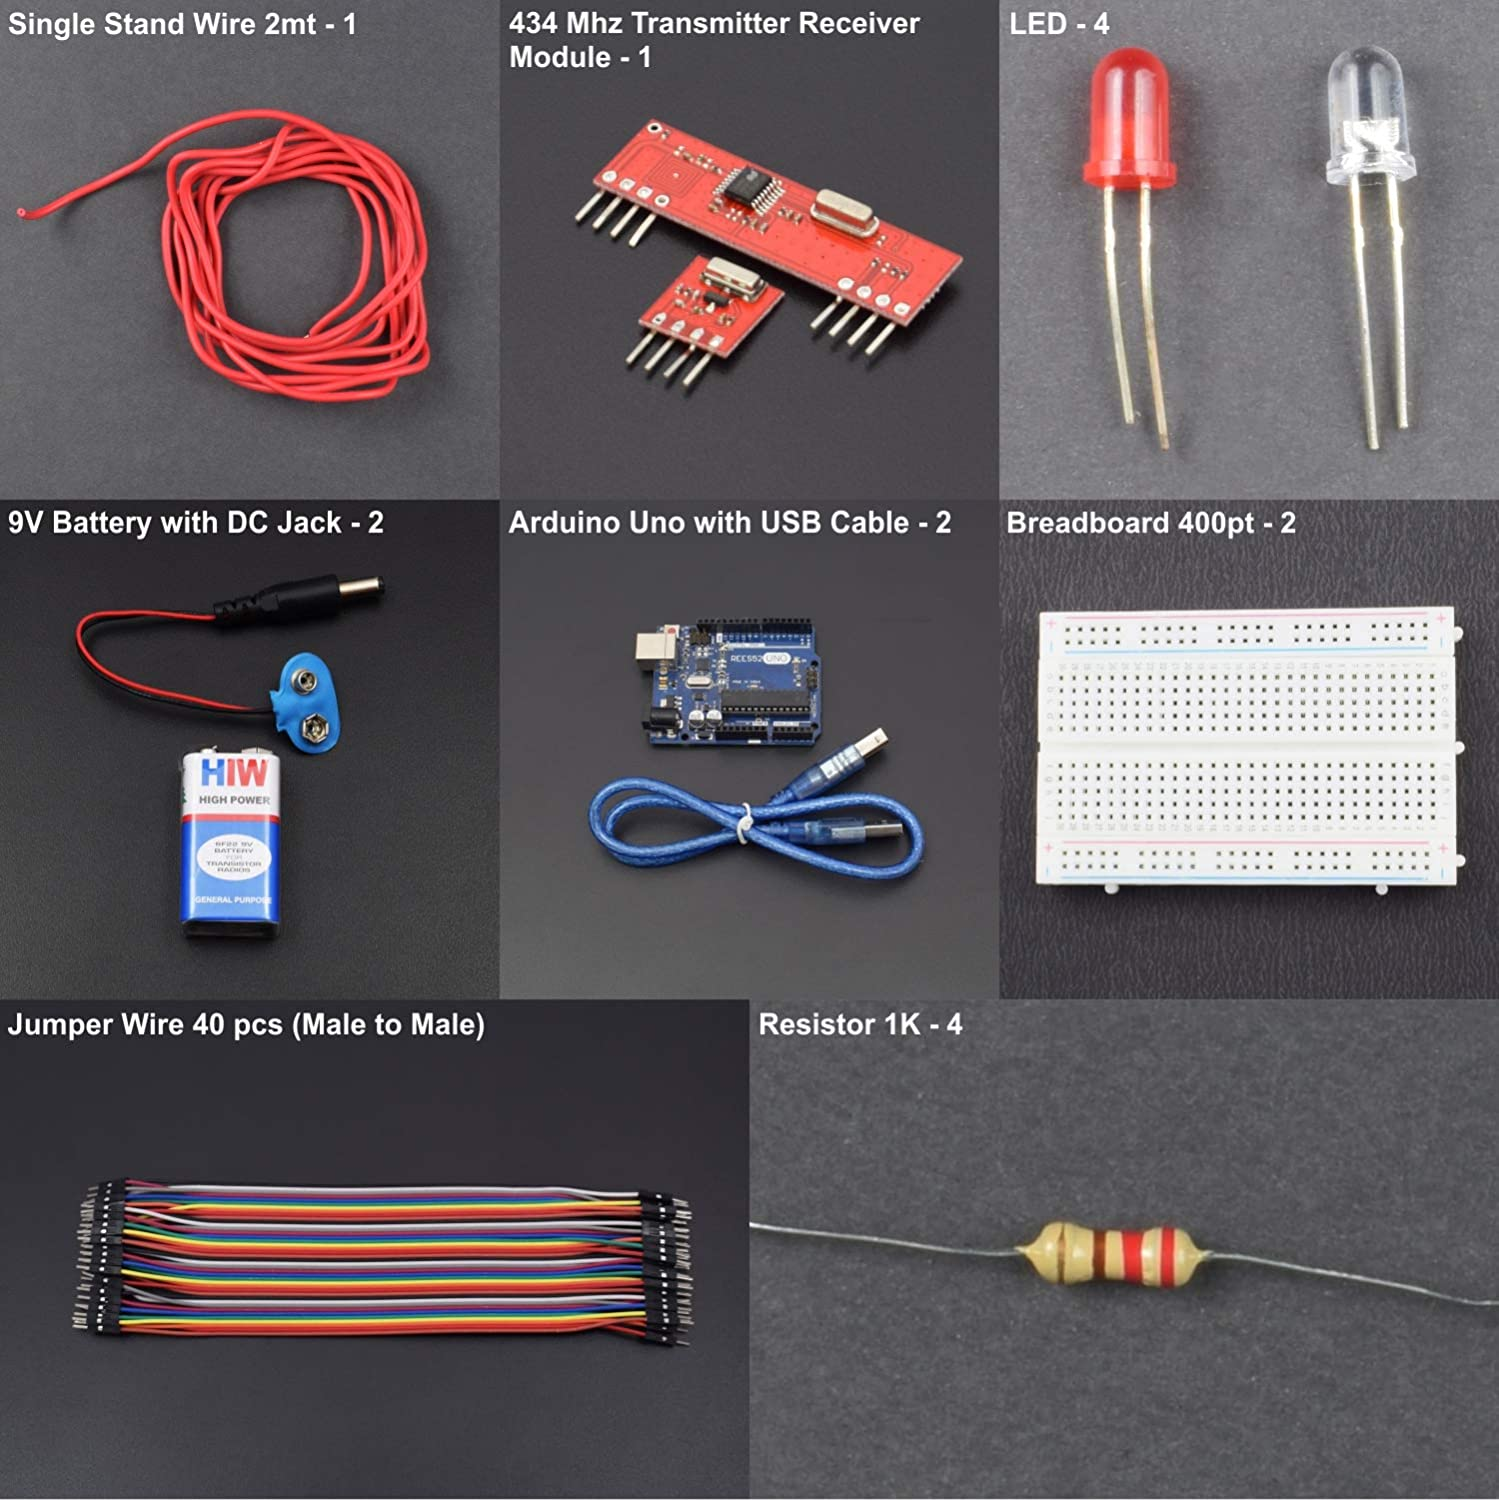 Rees52 Make A Communication Between 434 Mhz Transmitter And Receiver Circuit Module Interfacing With Arduino Uno Step By Manual Kt814